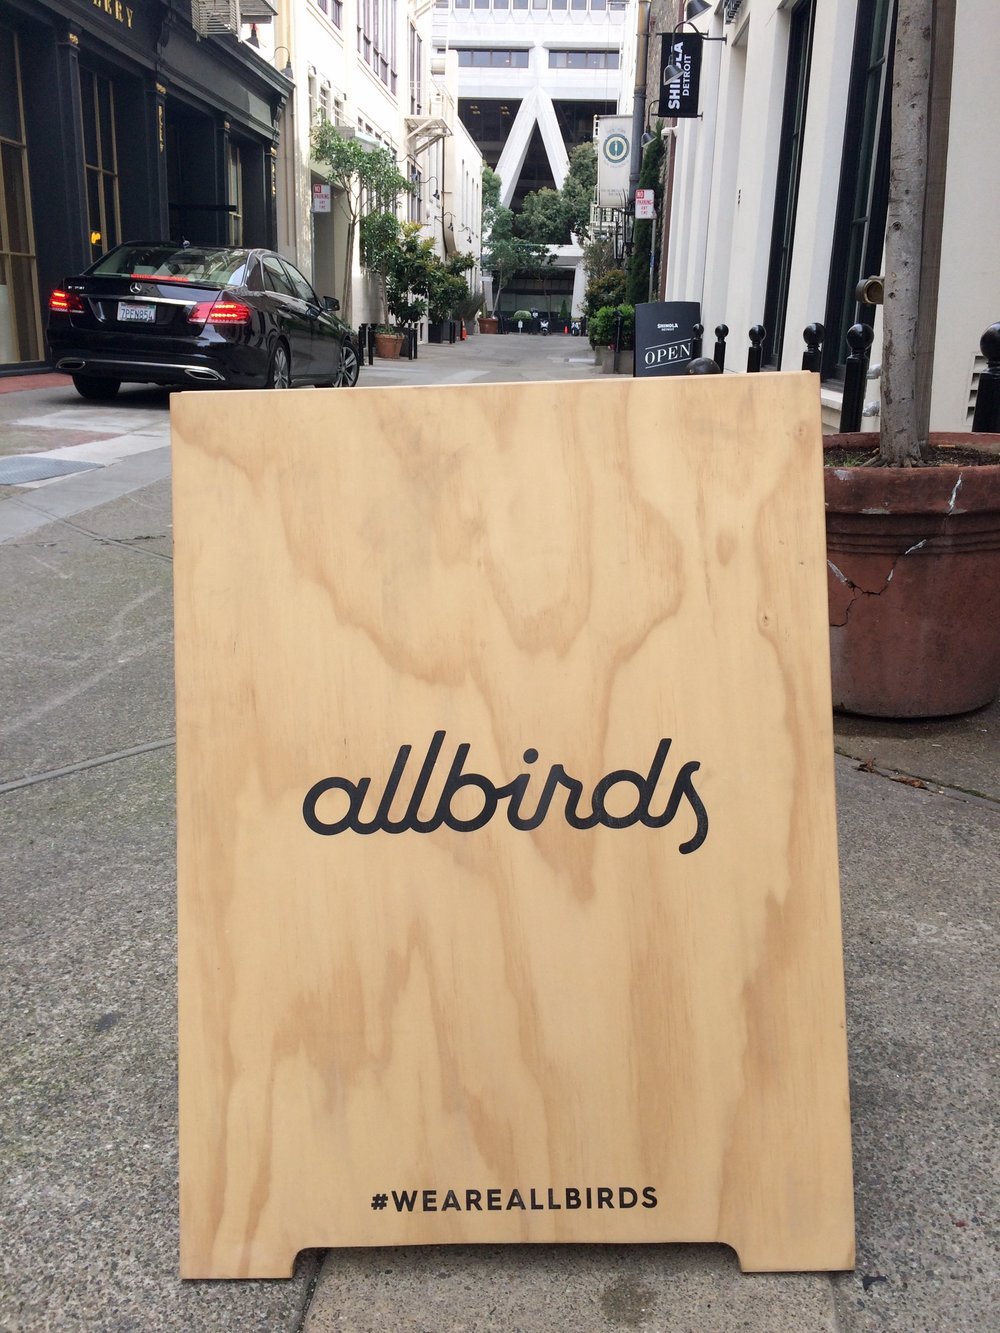 The Allbirds sign in downtown San Francisco, photo courtesy of Natasa Spasic